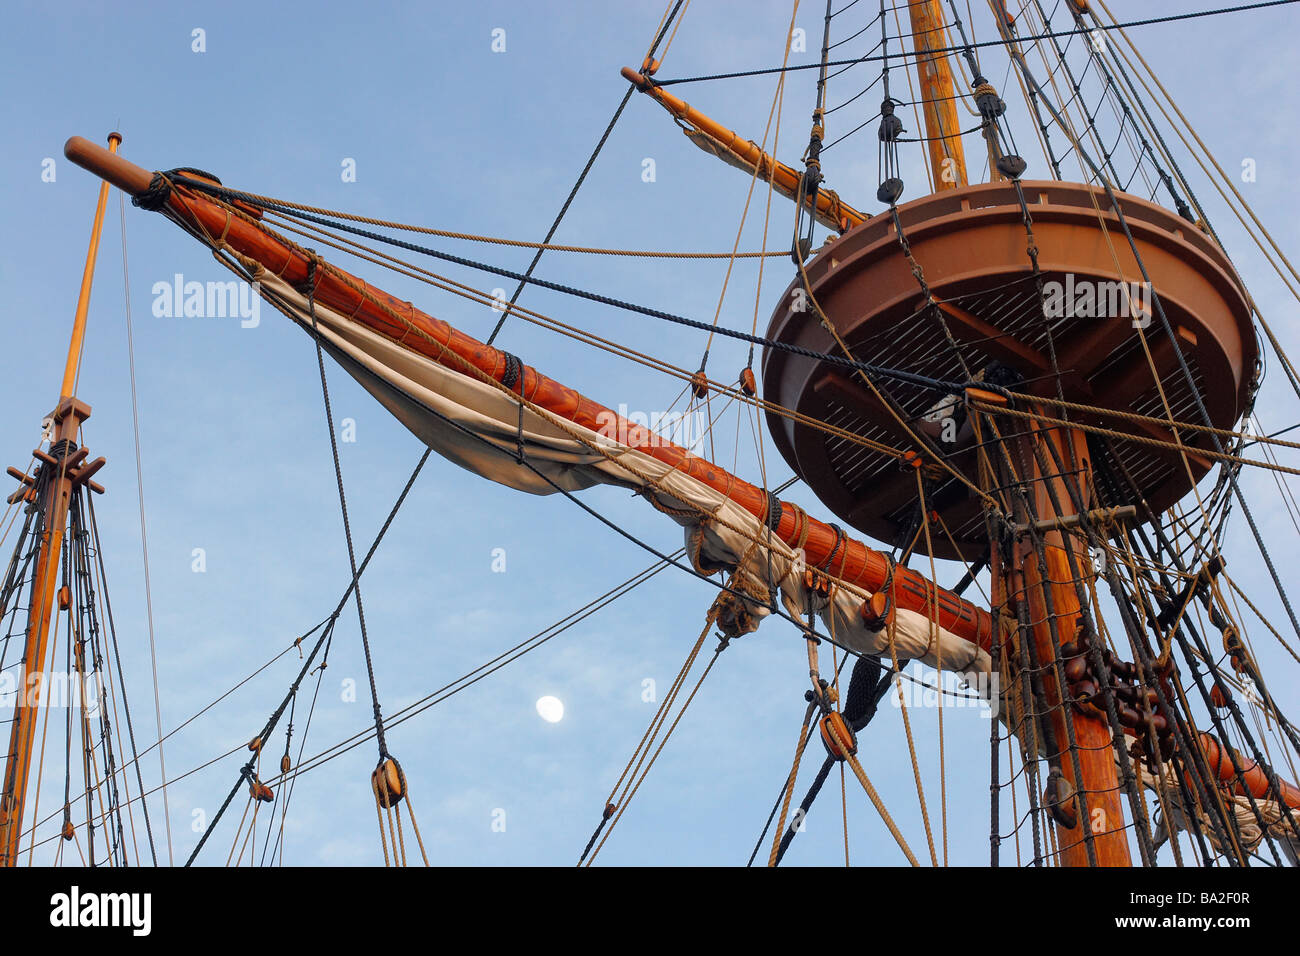 The moon visible between block and tackle rigging on a Jamestown Settlement ship - Stock Image